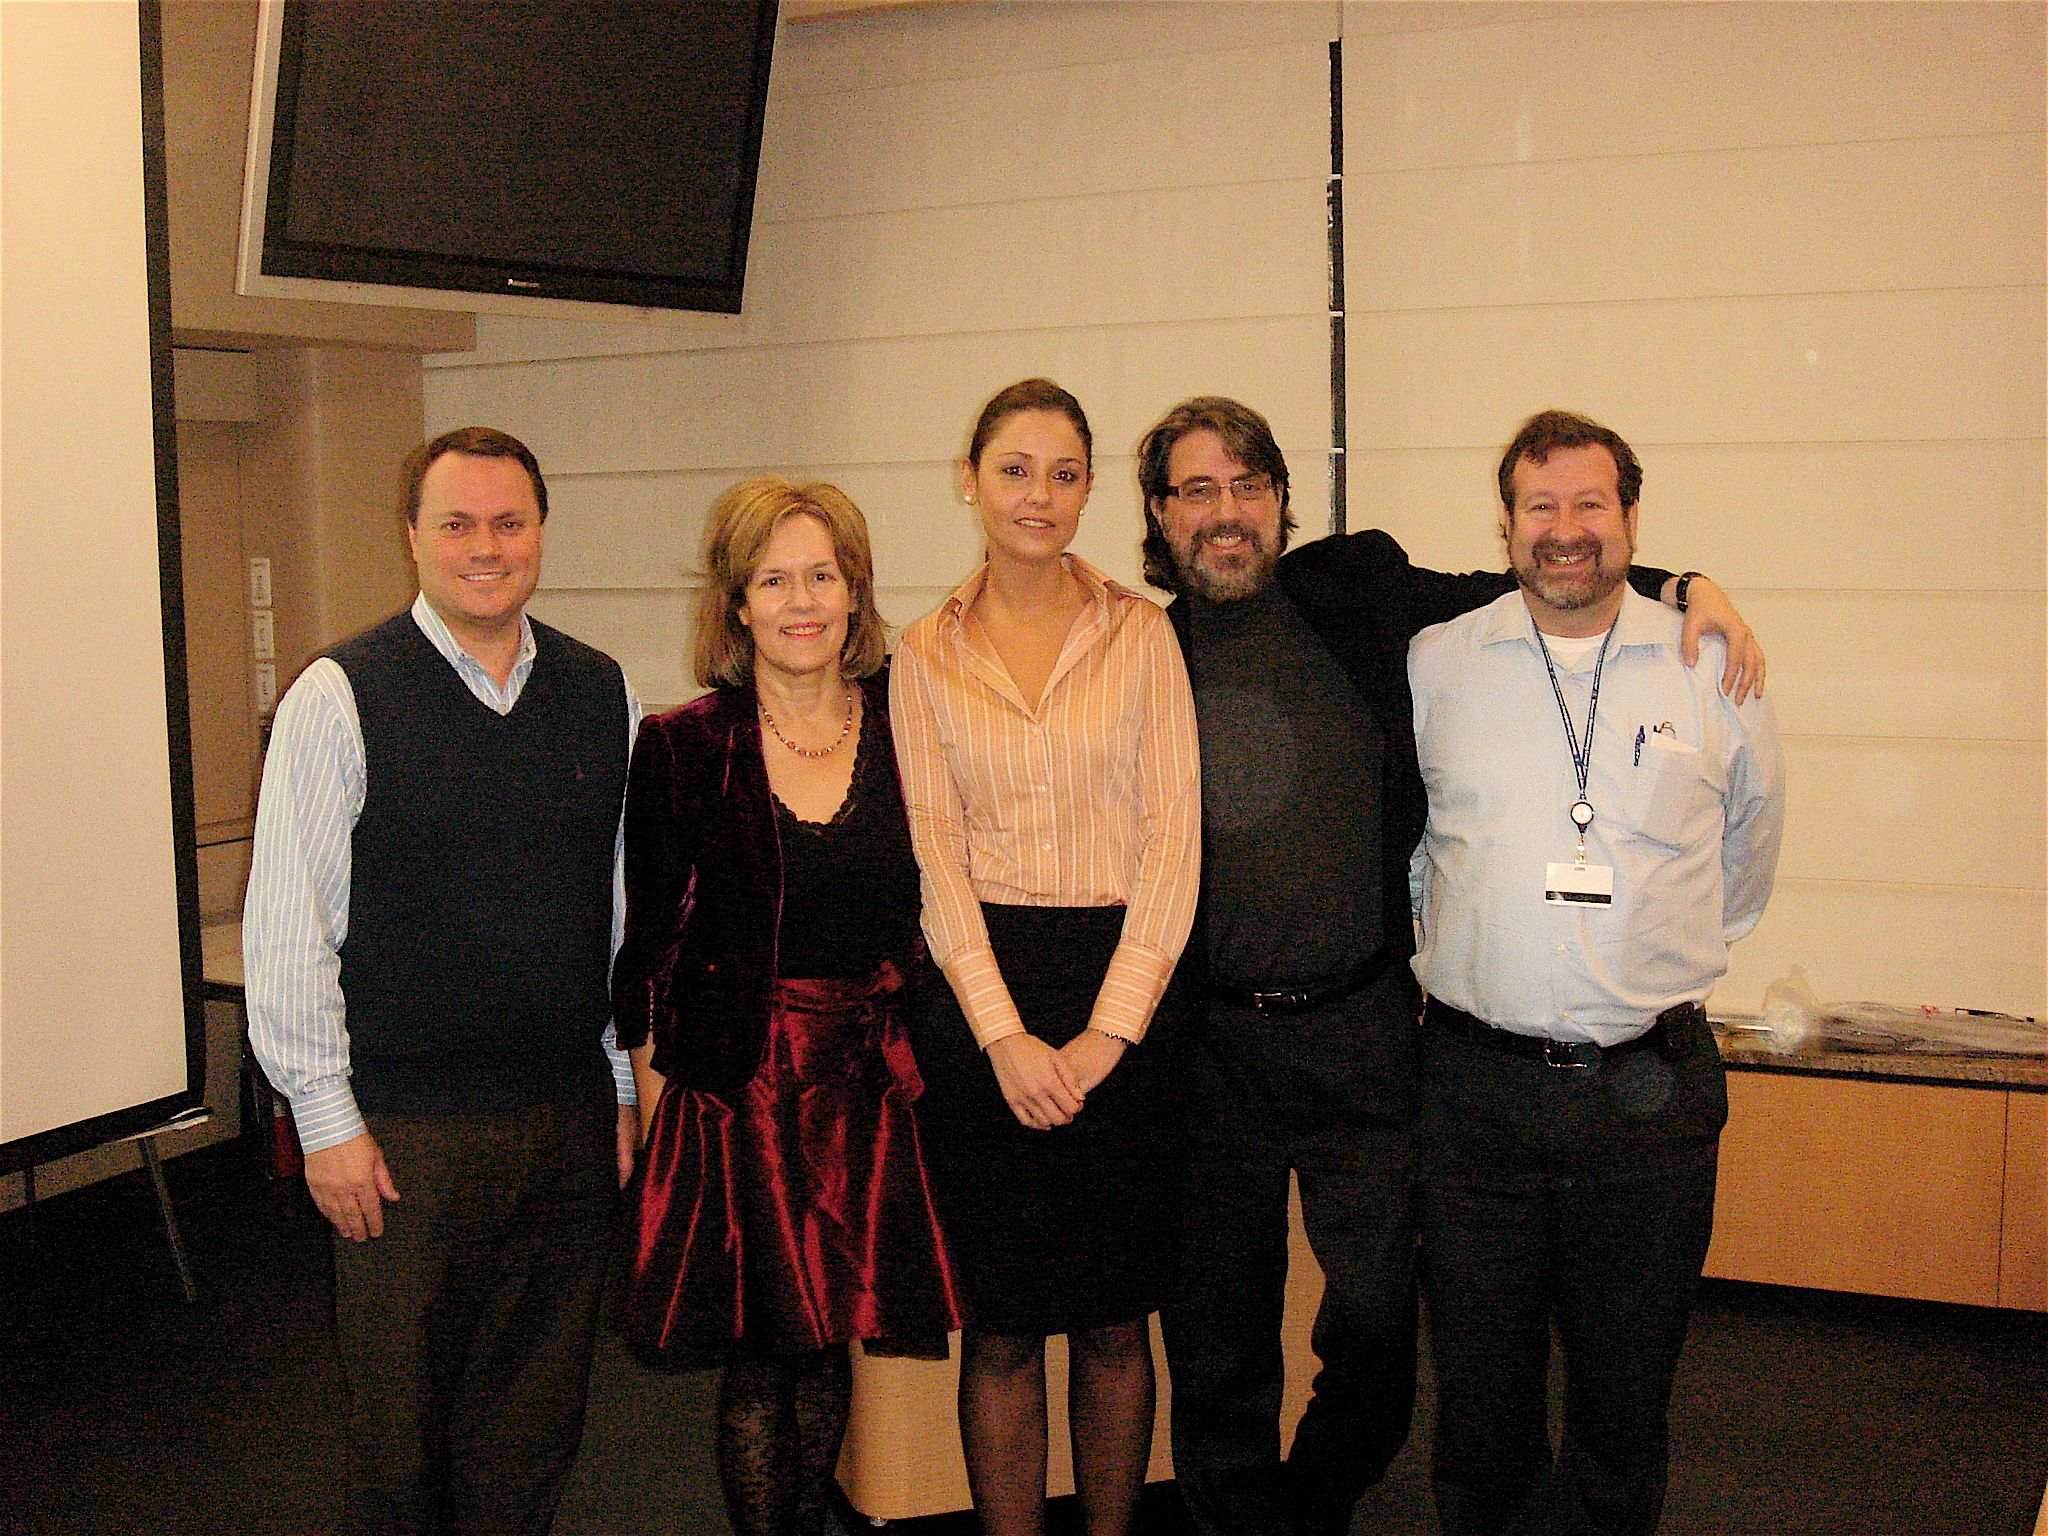 Branka with her thesis committee (l to r: Dr. David Lyden, Dr. Lorraine Gudas, Dr. Richard Kolesnick and Dr. David Scheinberg)